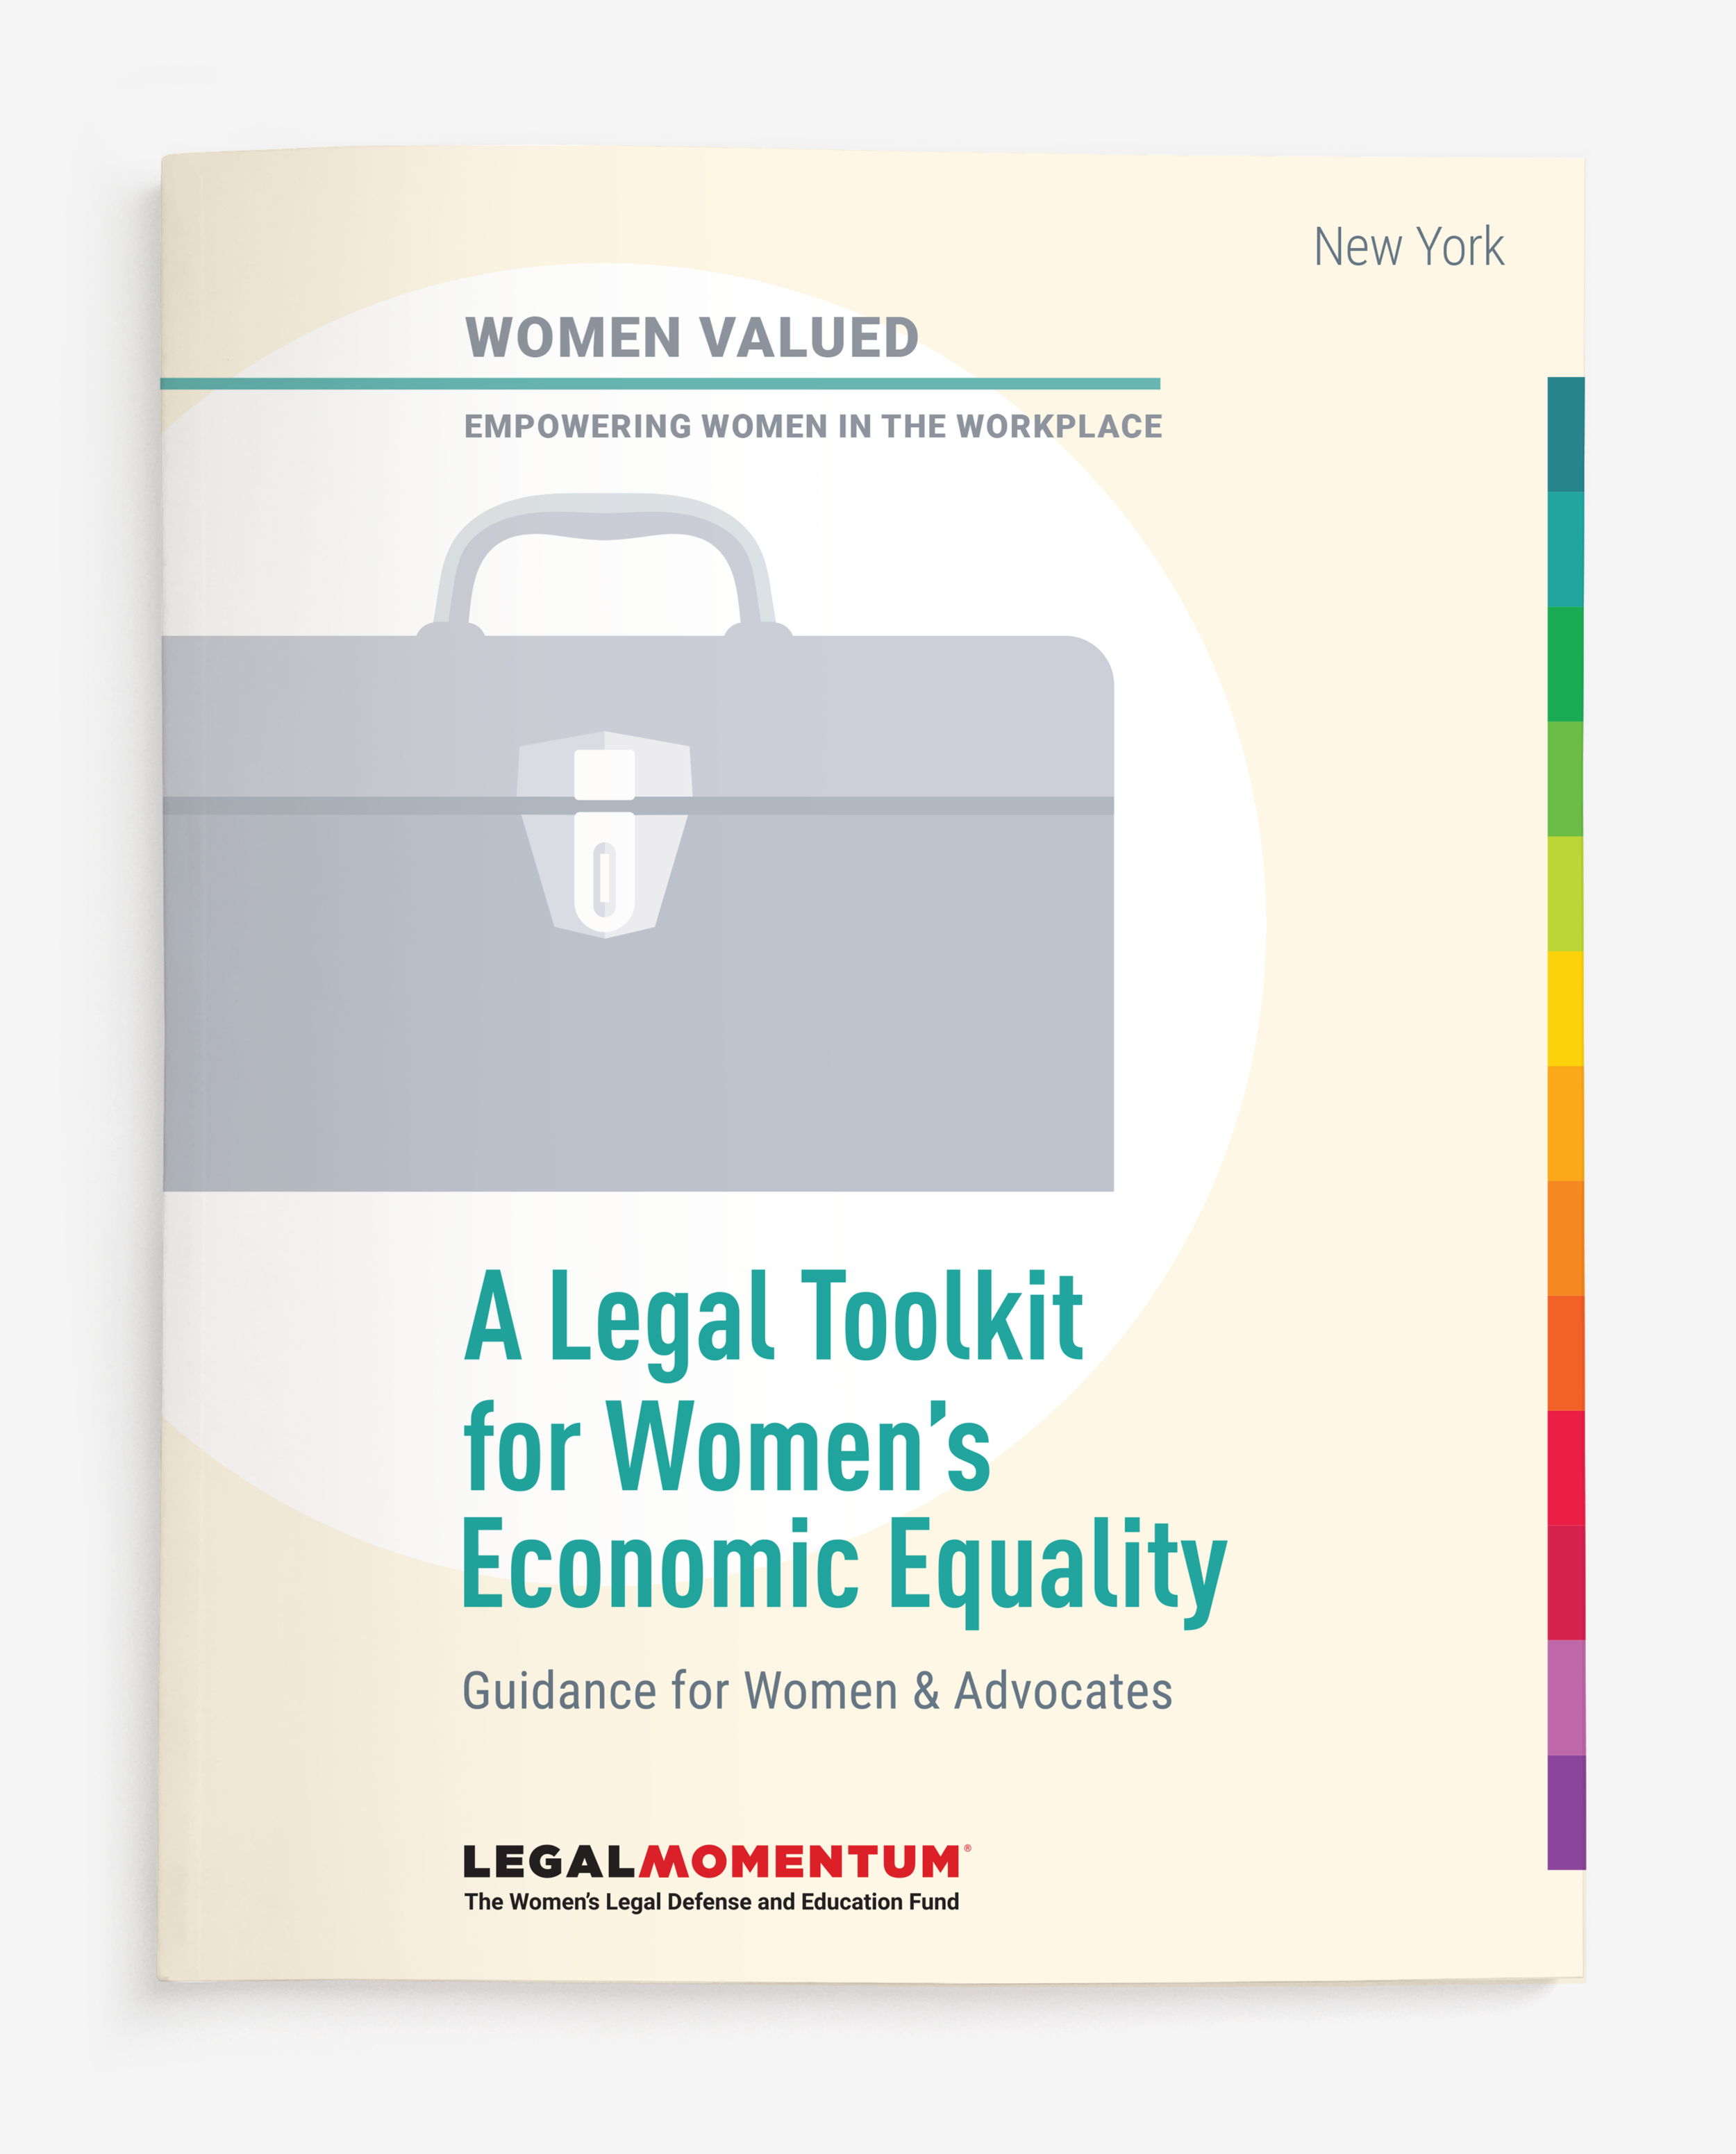 legal-momentum-toolkit-cover.png